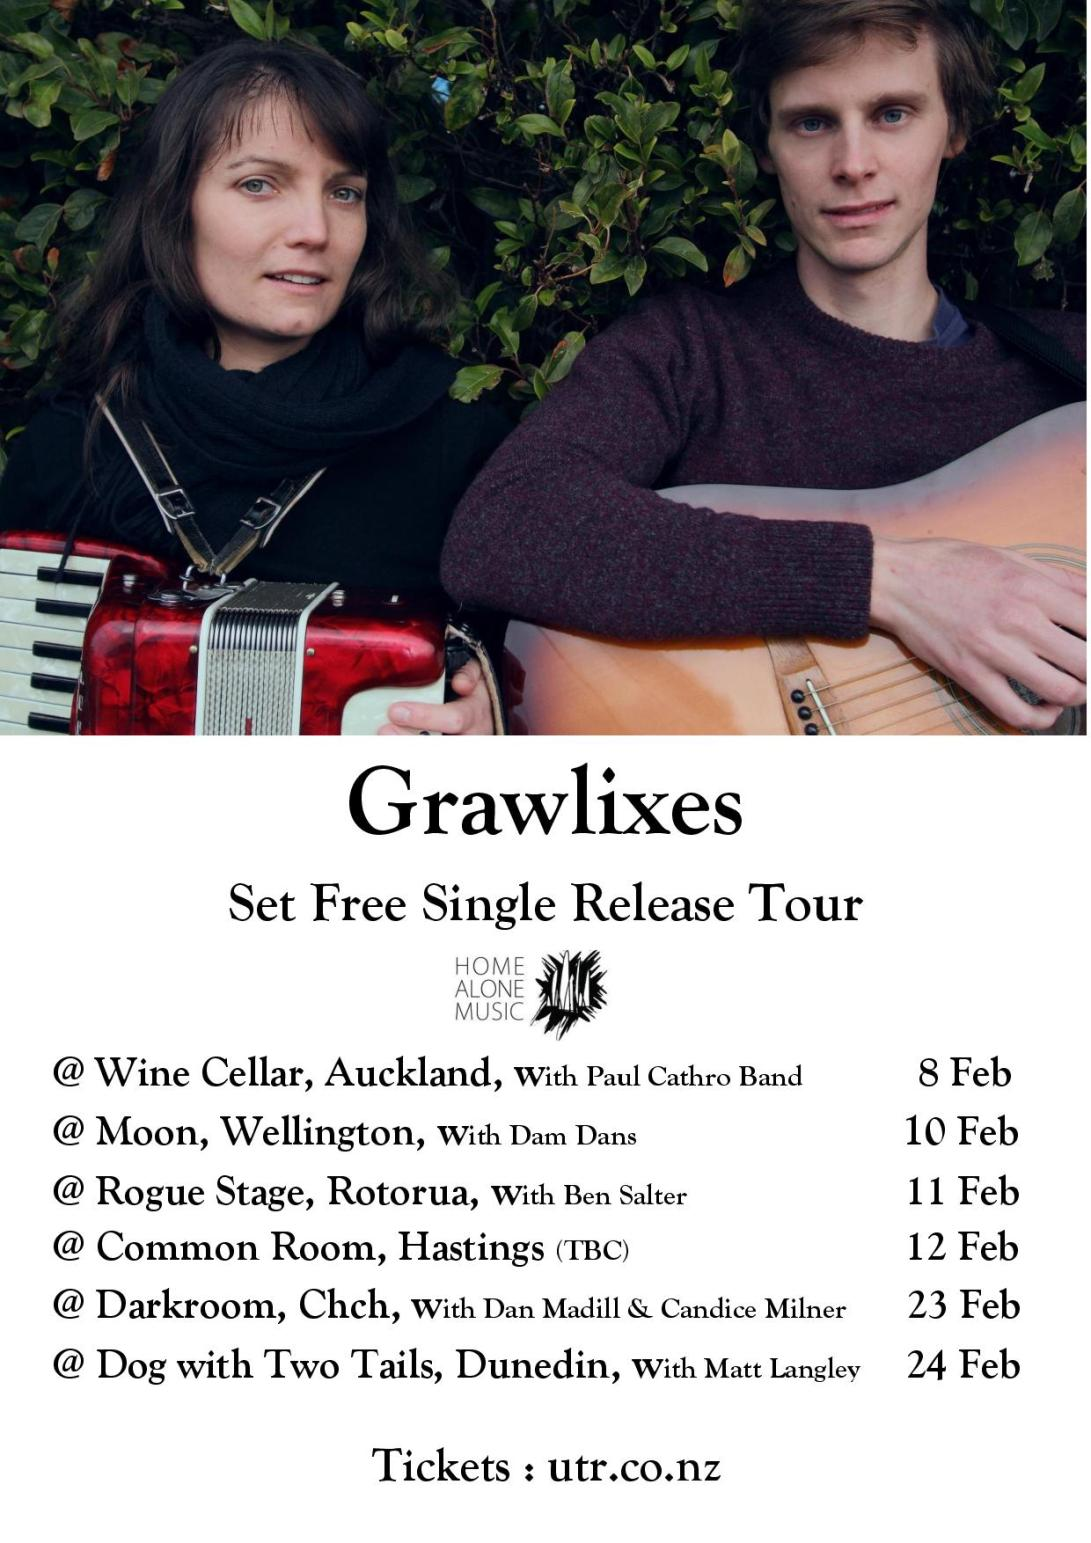 Grawlixes A4 Feb Tour jpeg.jpg